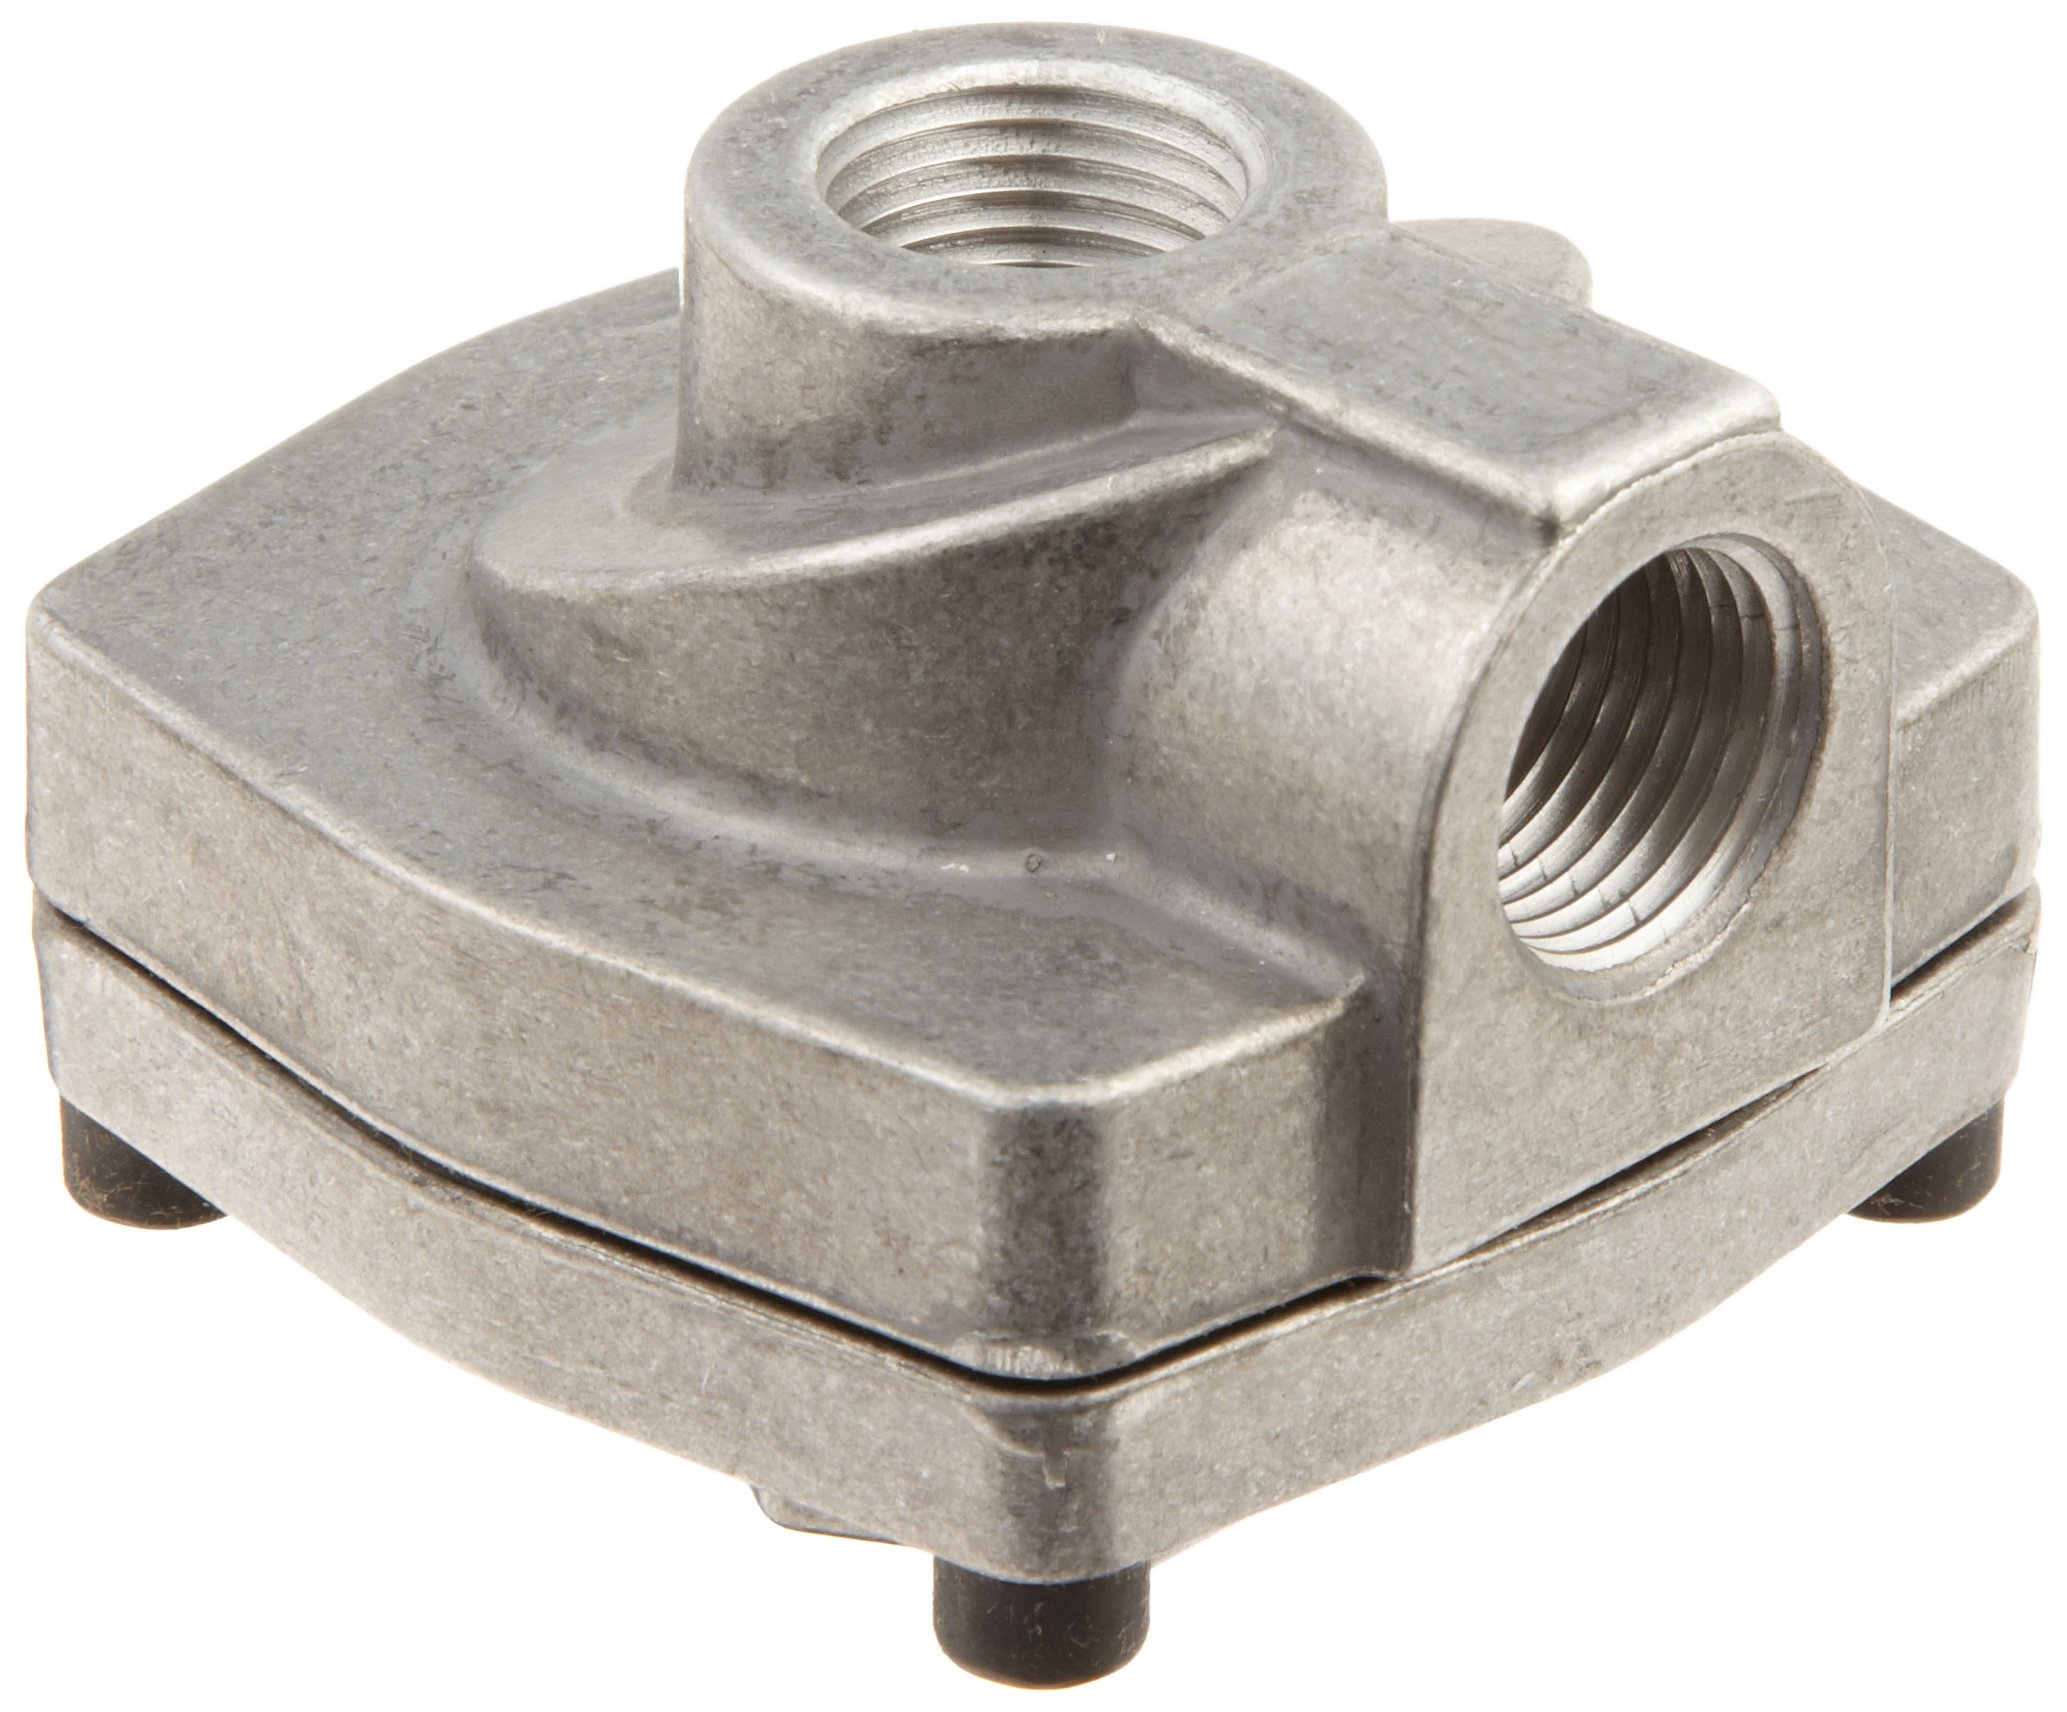 Parker 0R37VB Die Cast Aluminum Quick Exhaust Valve with Fluorocarbon Static Seal, 3/8'' NPTF Inlet x 3/8'' NPTF Cylinder x 3/8'' NPTF Exhaust, 240 scfm Flow, 3 - 150 psi